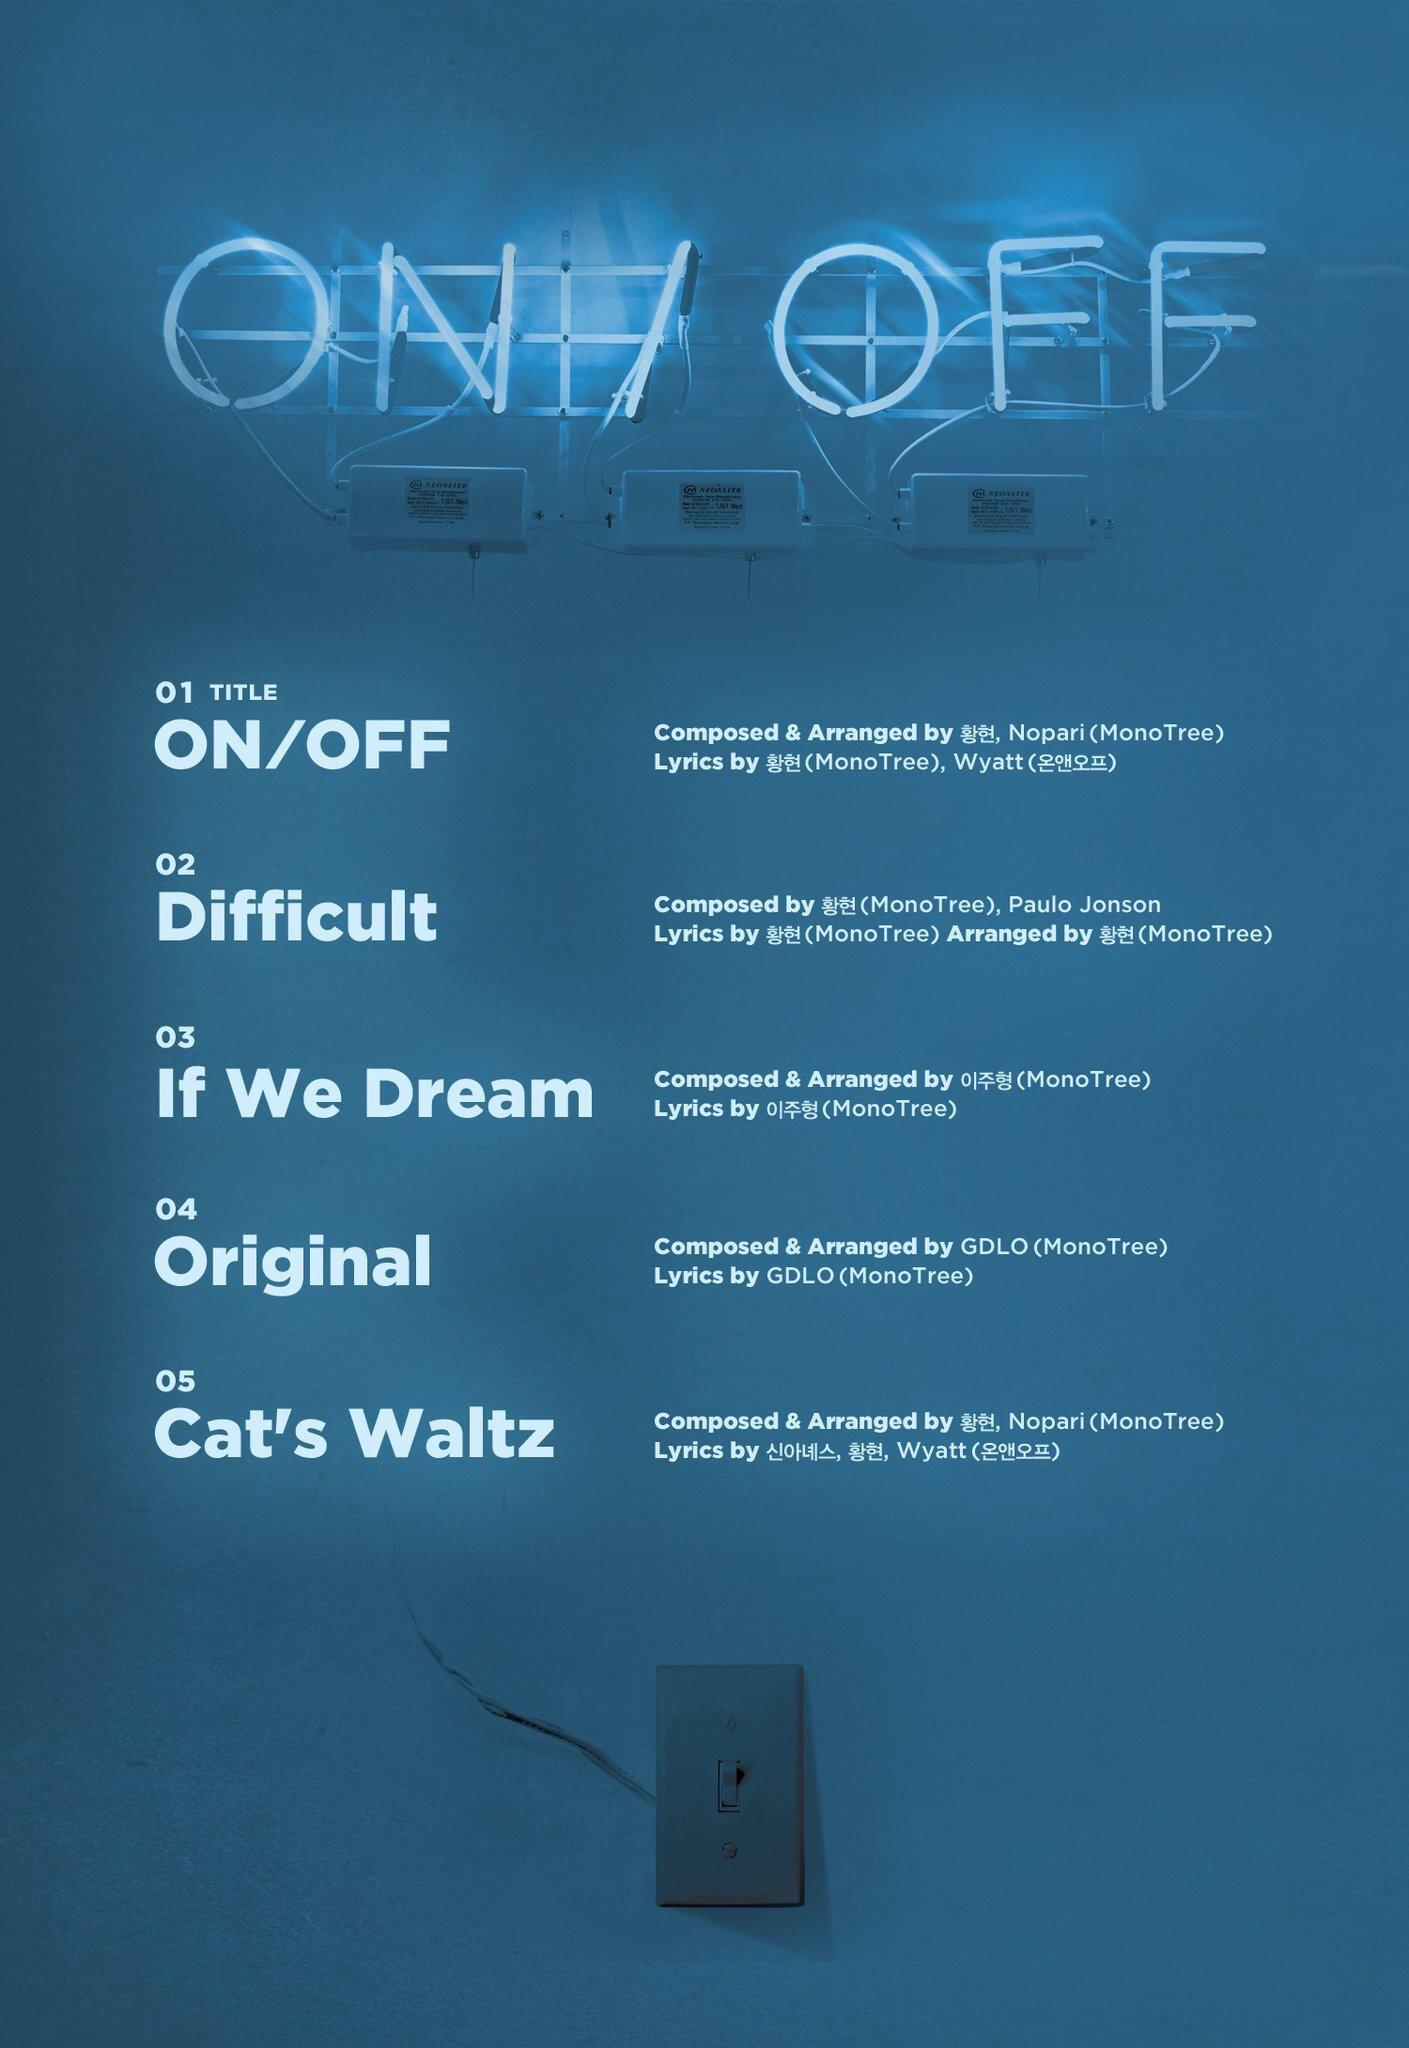 onf-on-off-album-tracklist